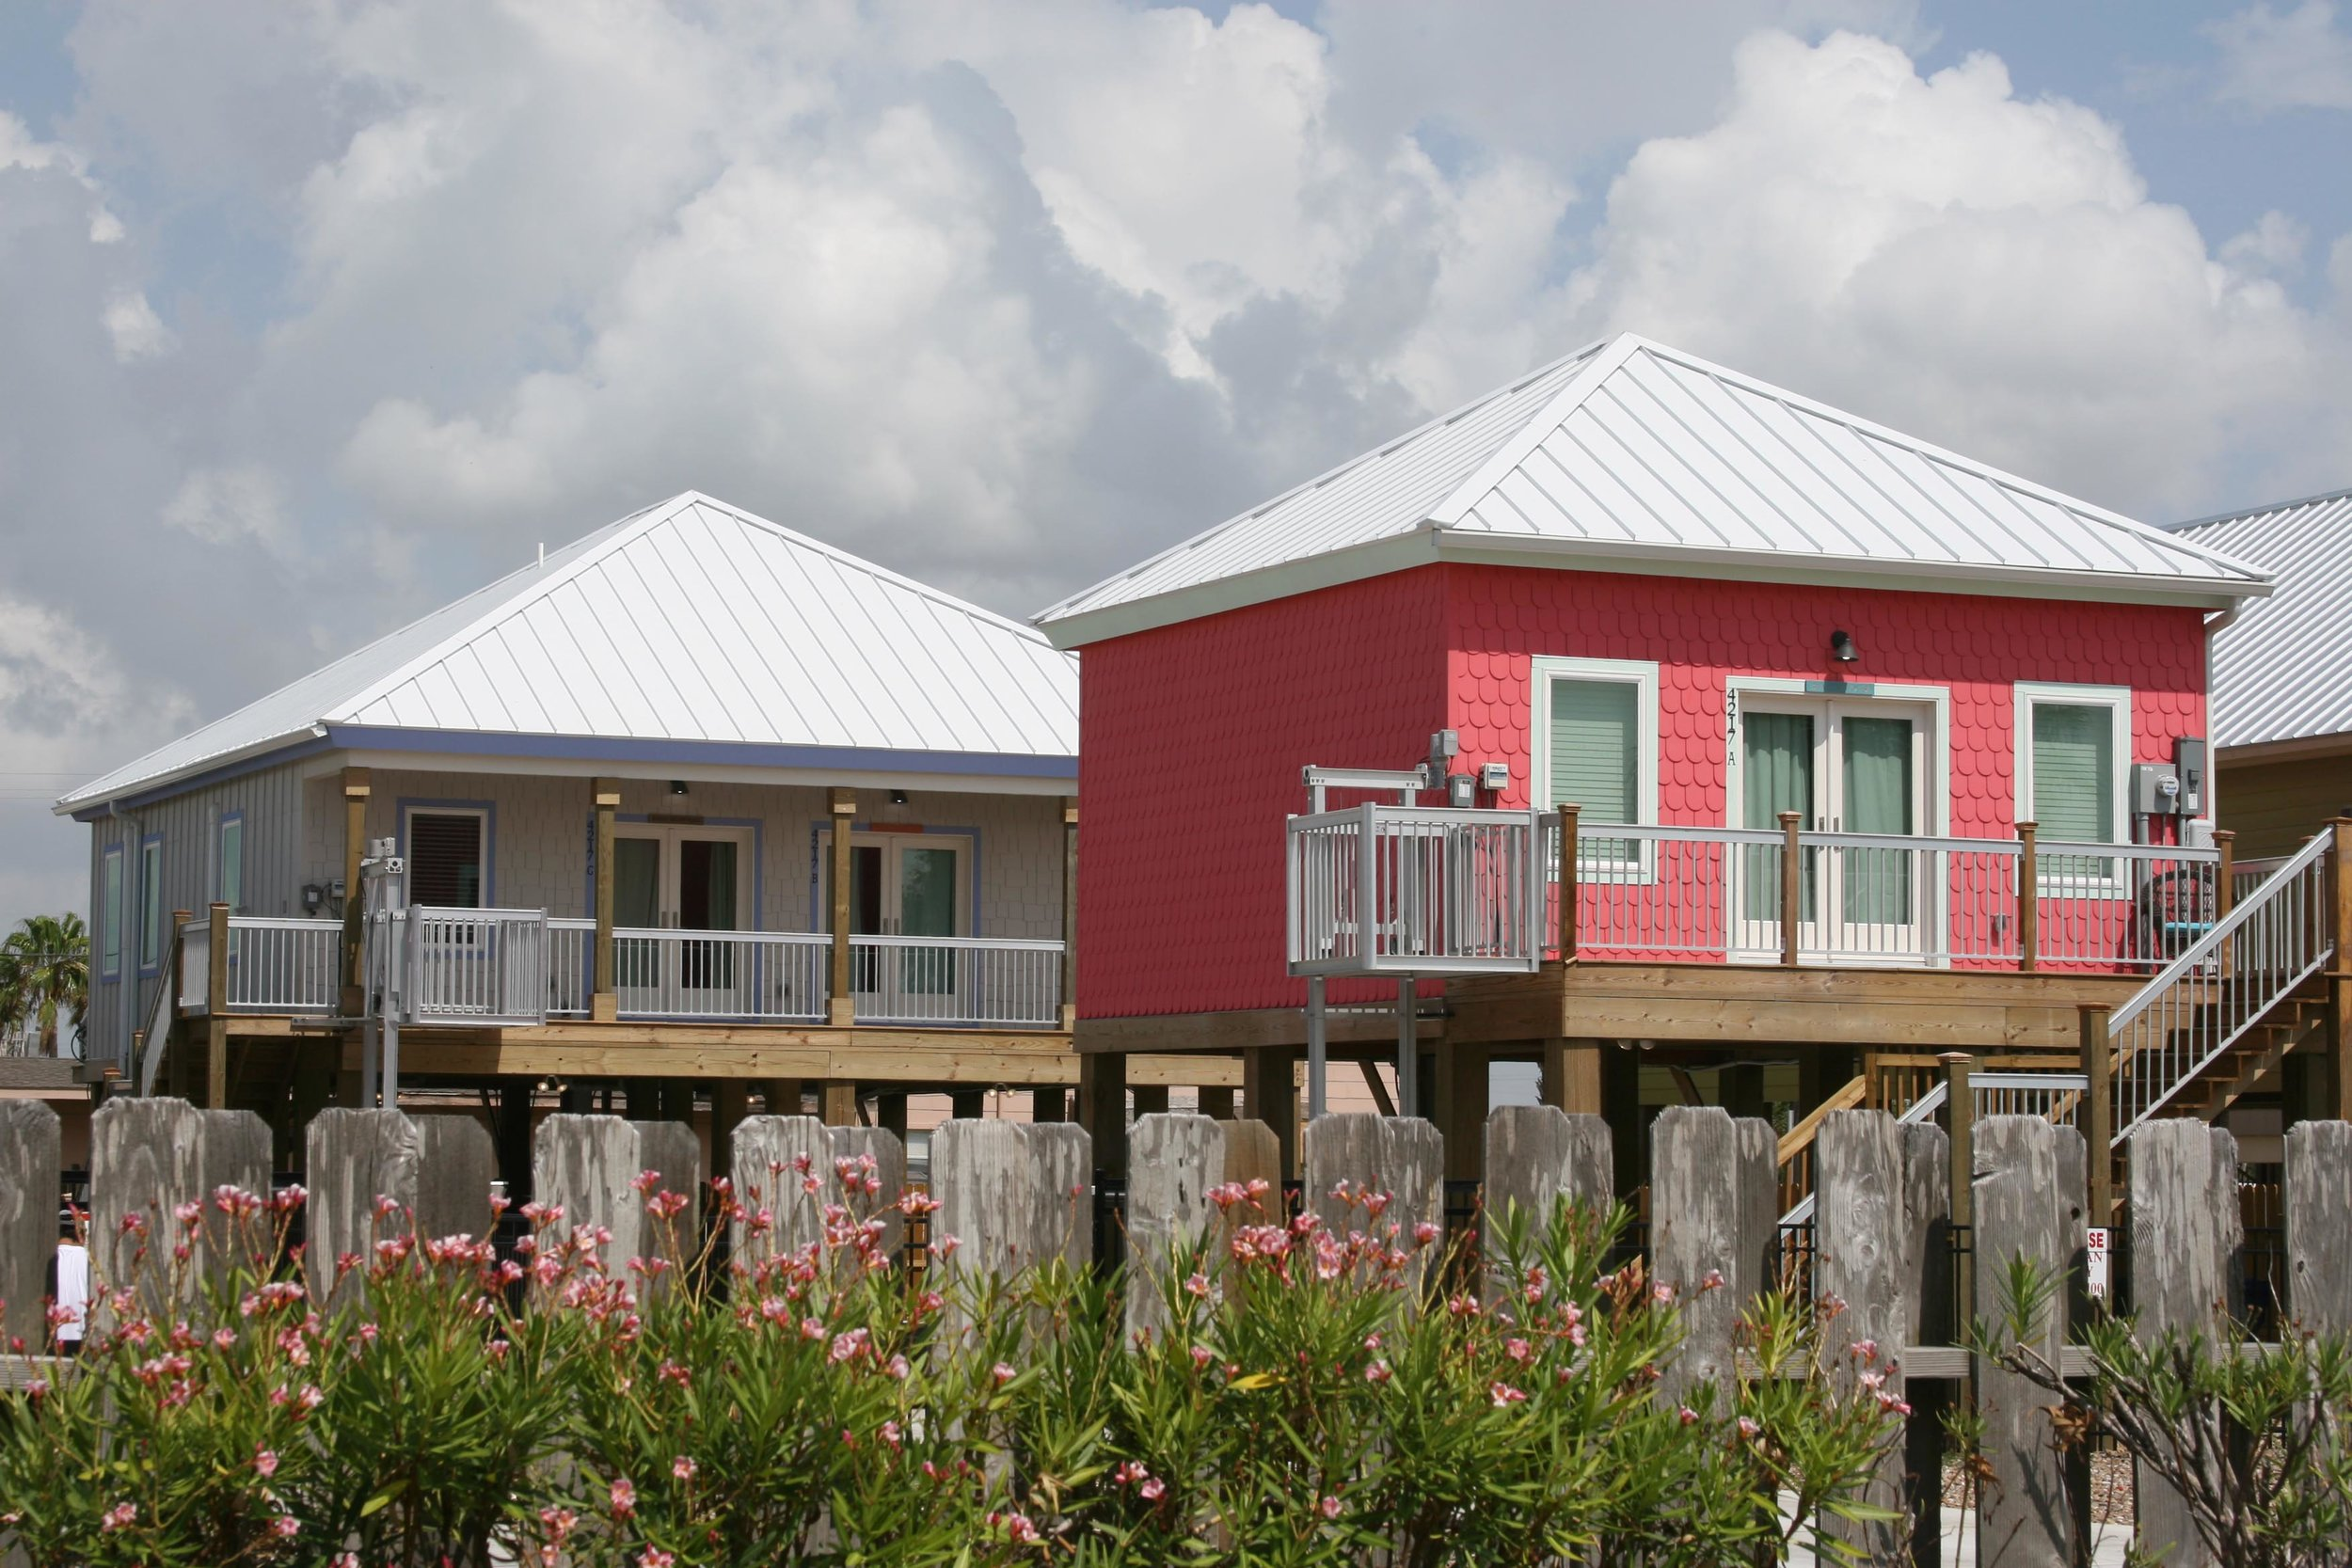 Cottages By The Bay offers both studio and duplex cottages for monthly rental. To book a cottage, please call Anne Foote at (361) 633-3110.